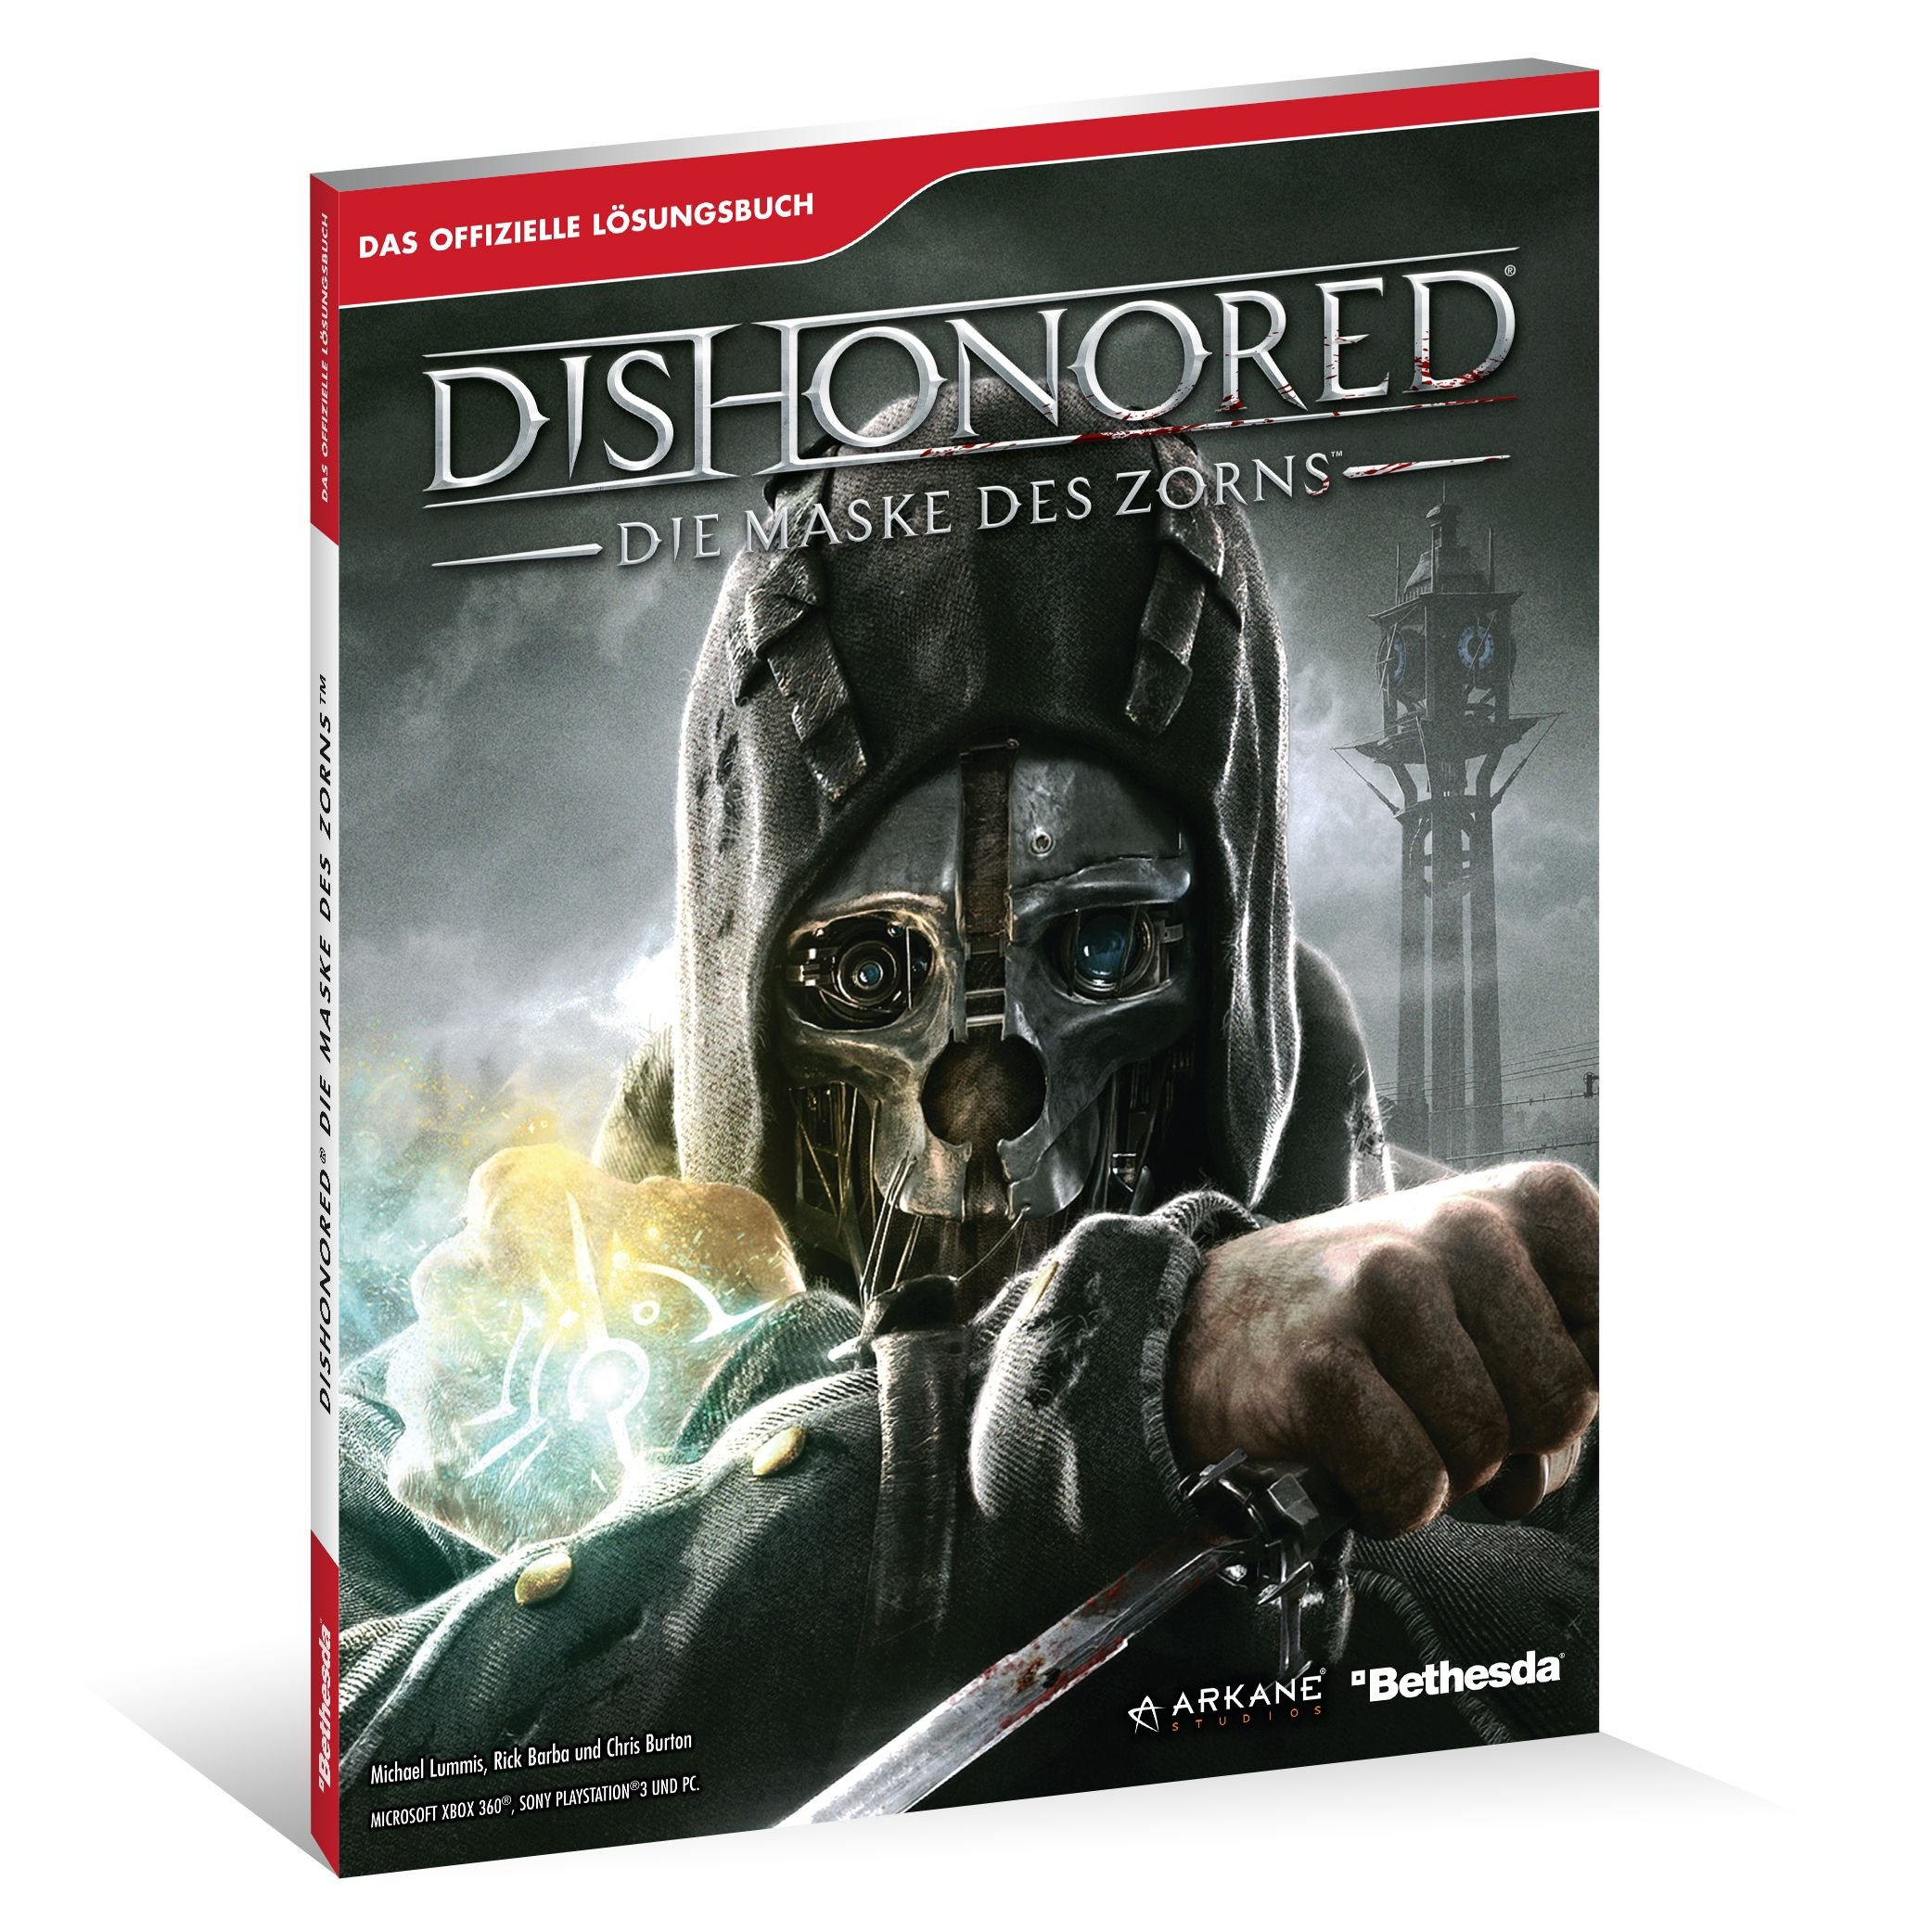 Dishonored (Lösungsbuch)